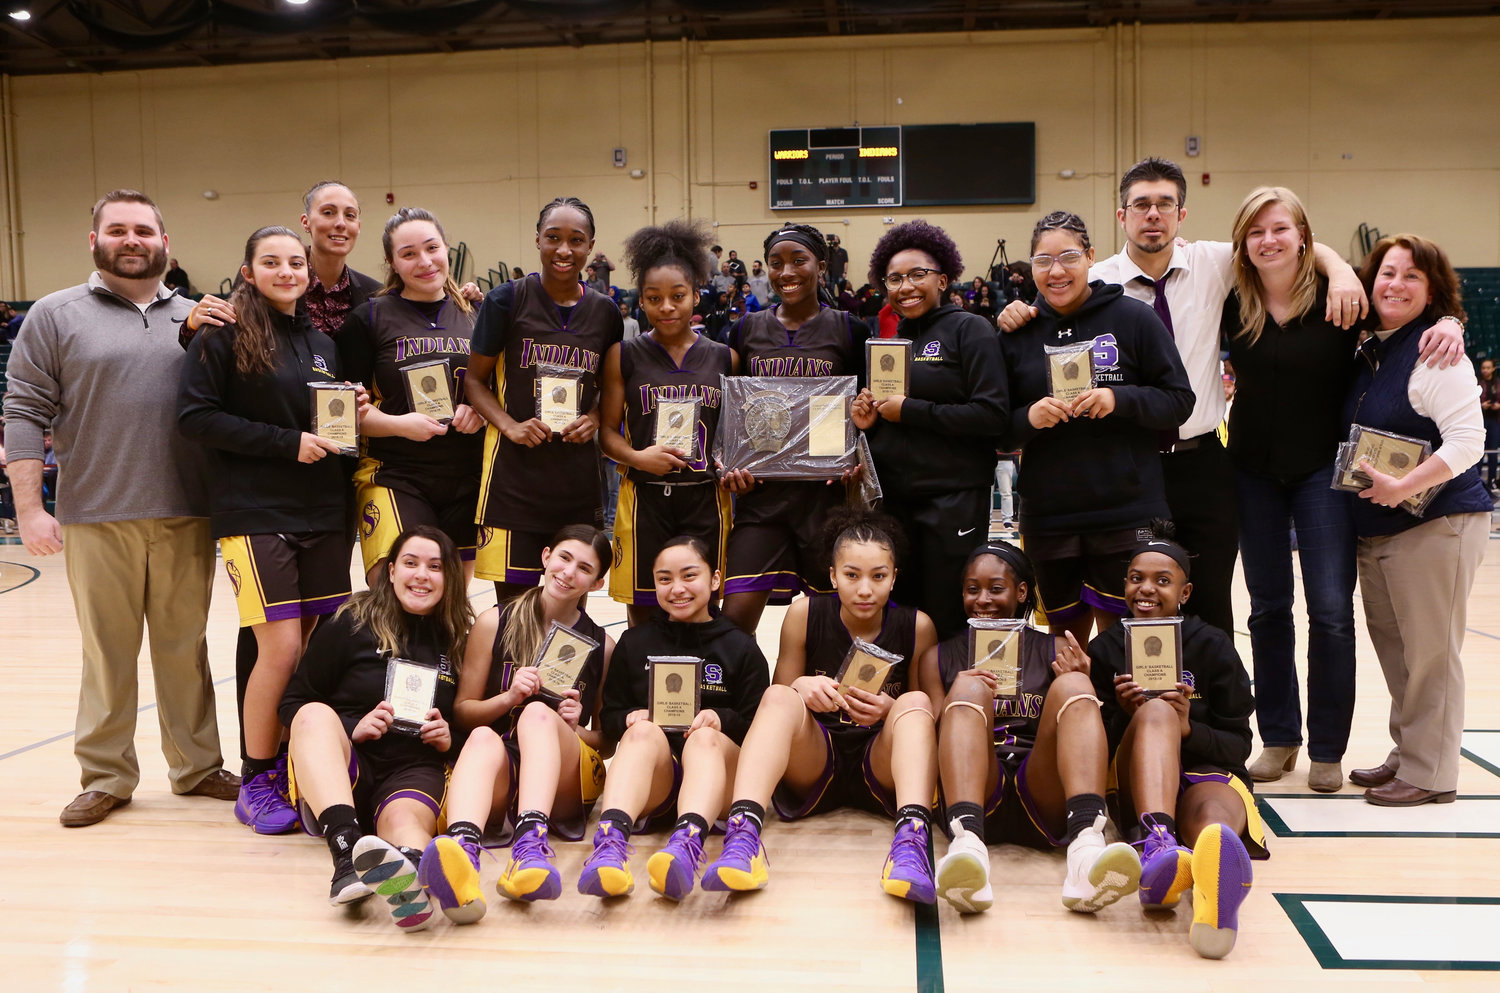 The Lady Indians made history last Sunday night, defeating Wantagh 62-46 at Farmingdale State College to claim their first-ever Nassau County championship.